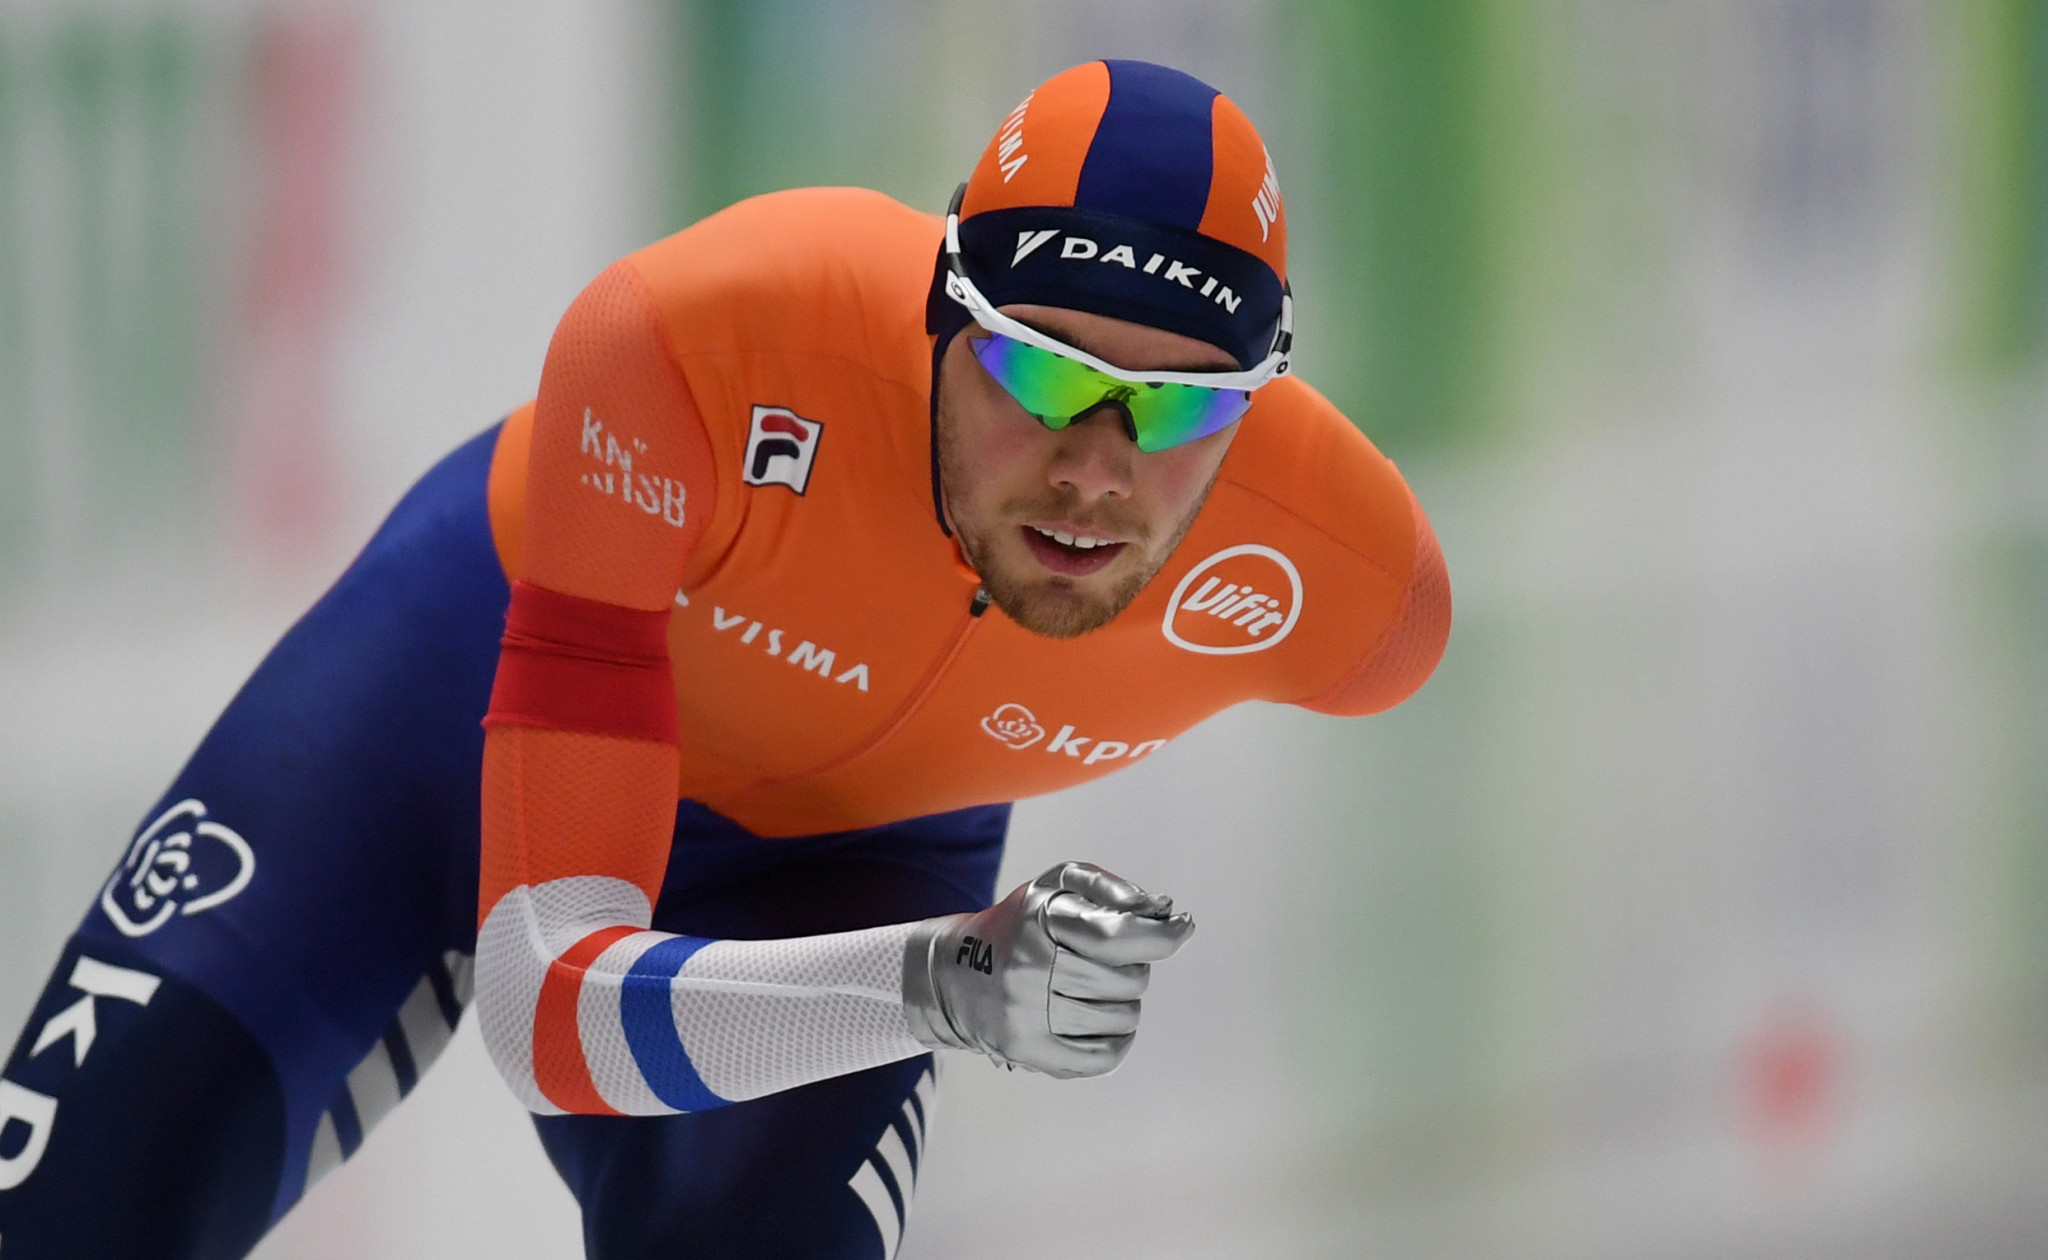 Dutch delight on opening day of ISU Speed Skating World Cup in Minsk